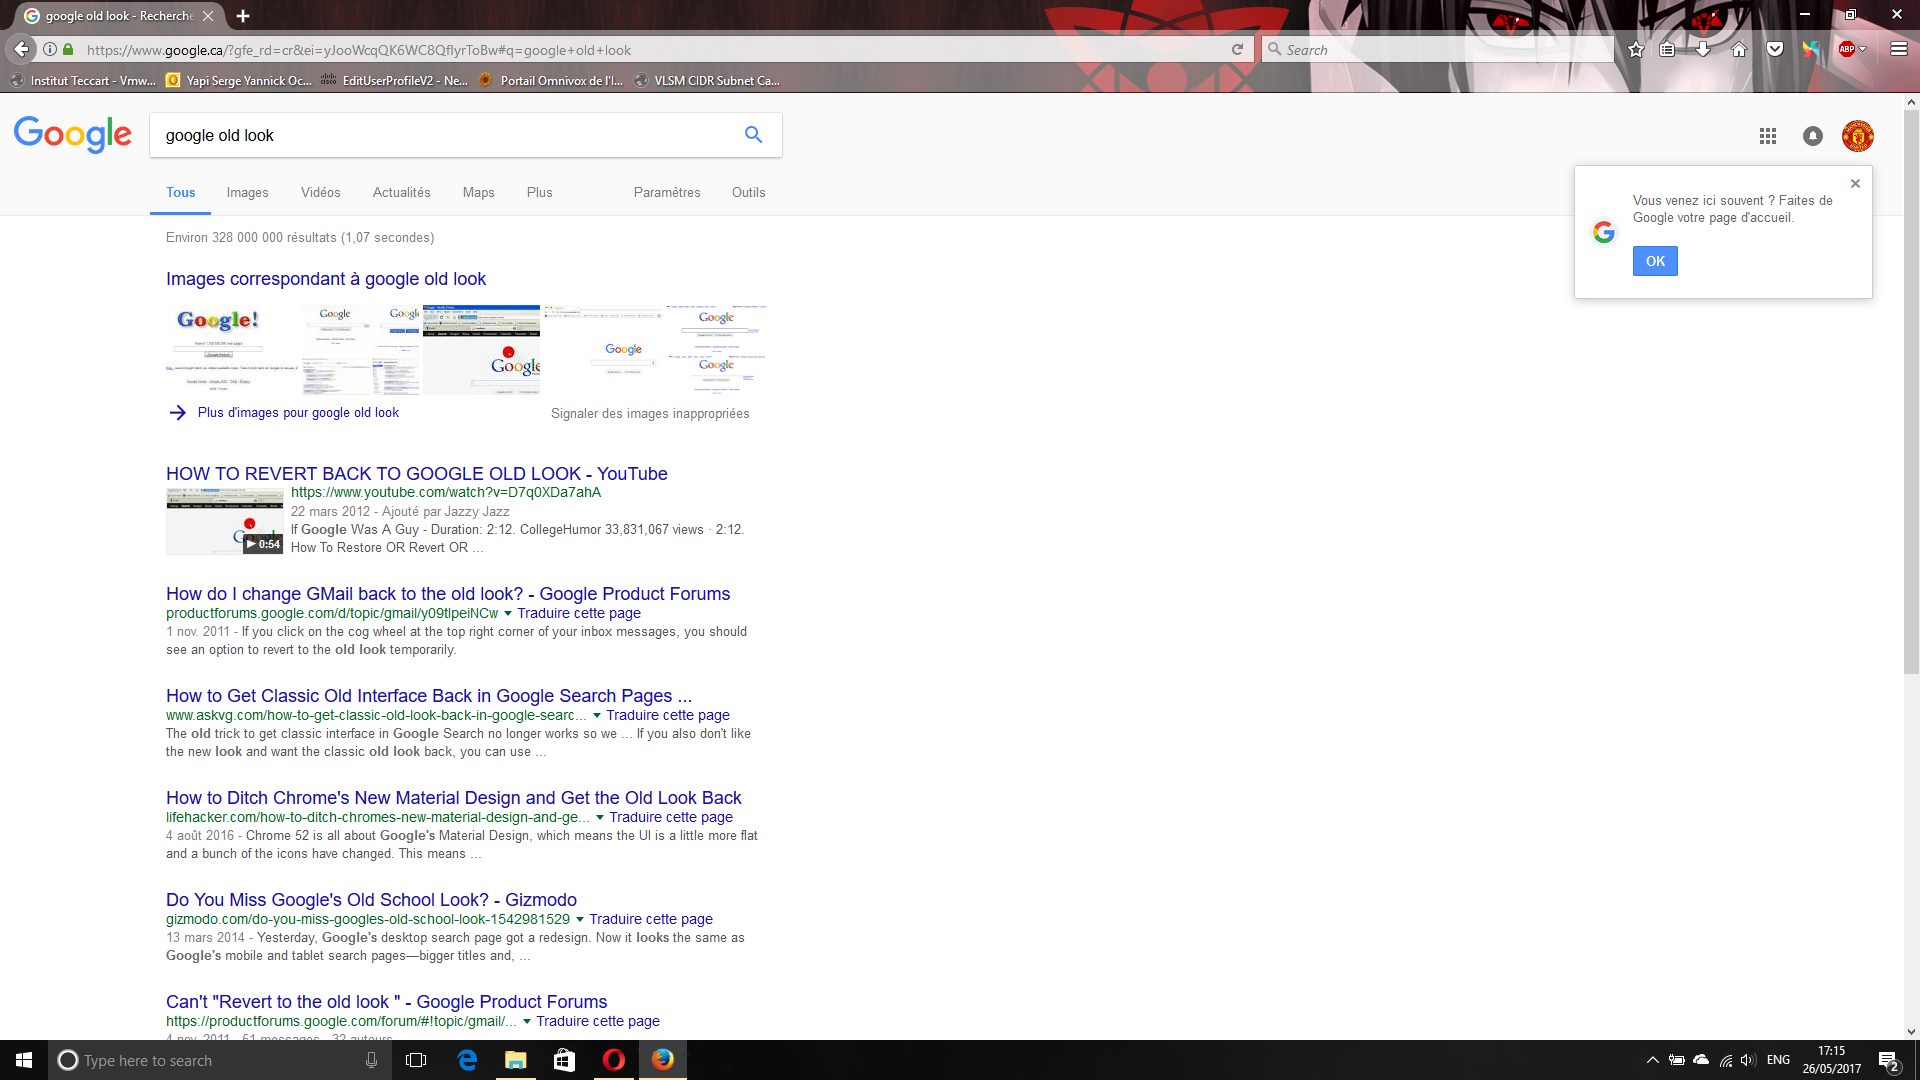 Opera 45 cant view standard Google Search - Google Search Help